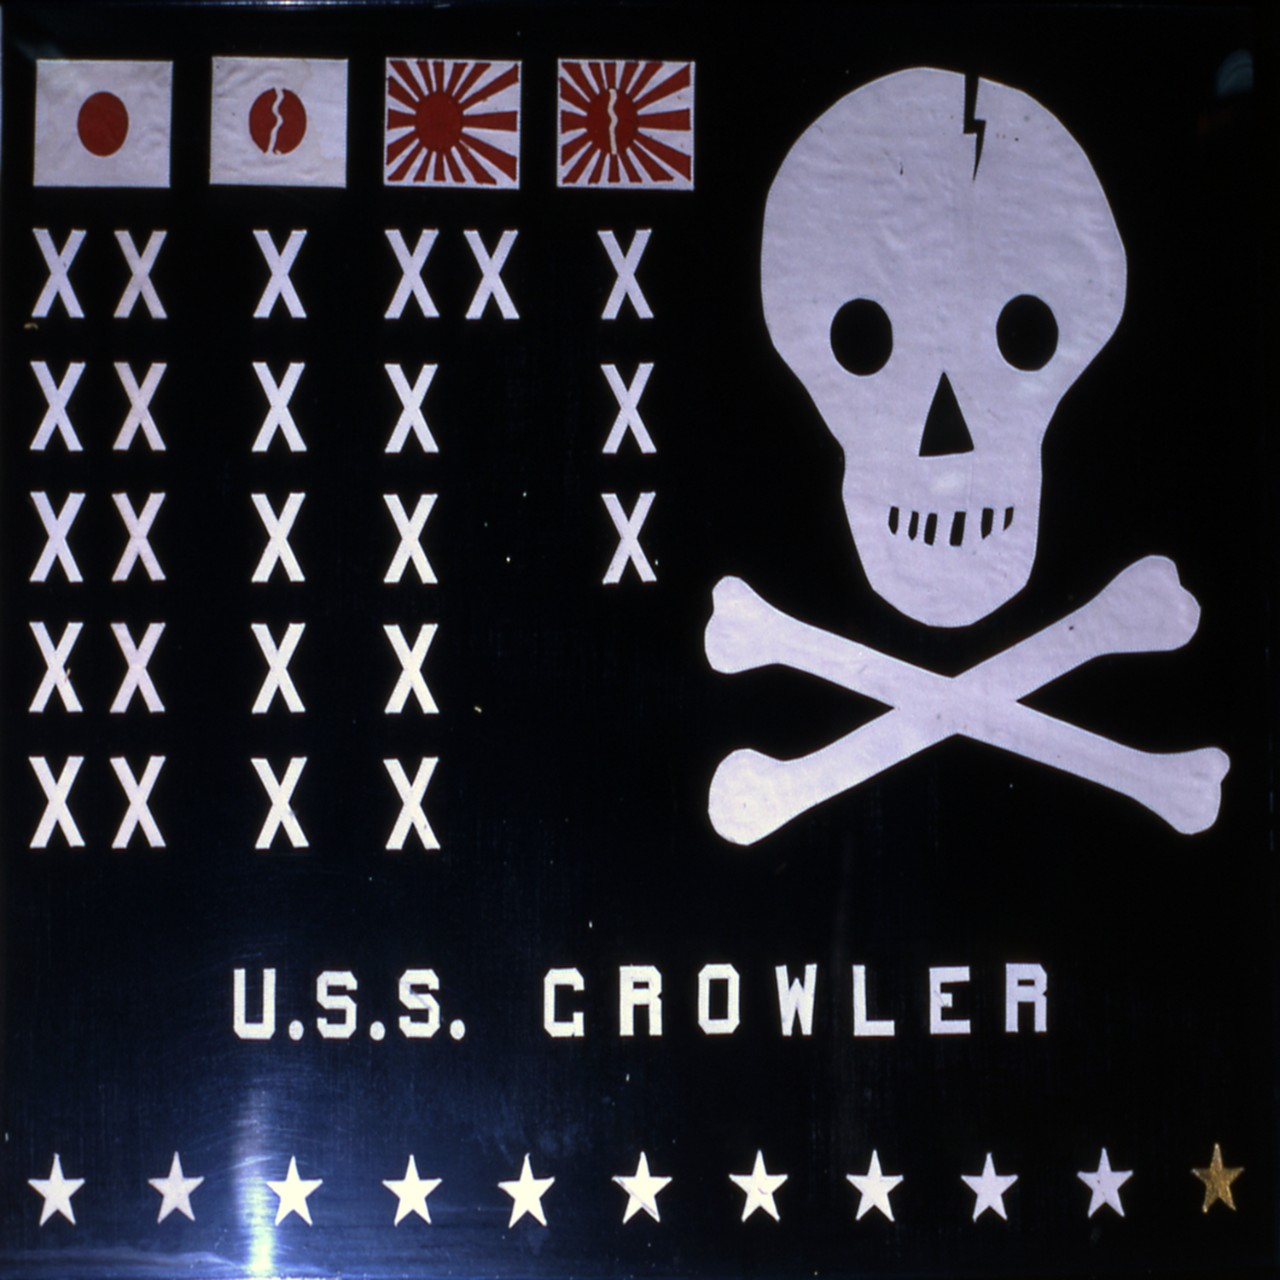 Battle flag of Growler depicts the enemy ships she had sunk as well as her eleven war patrols, with the gold star indicating she was on eternal patrol. (Naval History and Heritage Command Photograph UA 80.01.01)